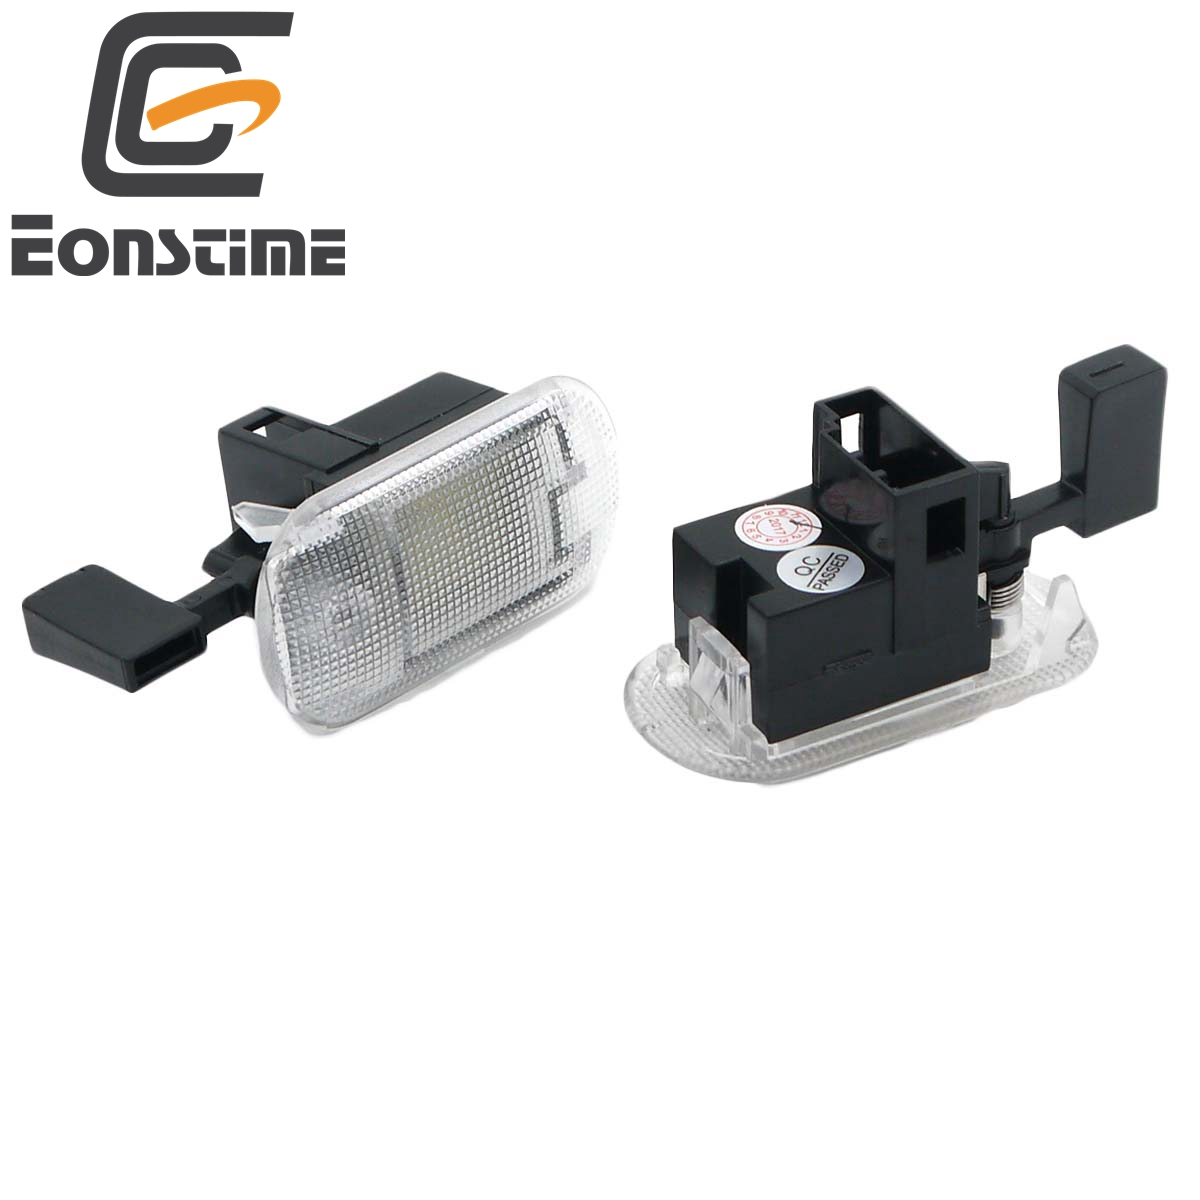 Eonstime 2pcs 18SMD Glove Box Compartment Light Module For VW Beetle Bora Jetta MK4 Caddy Golf MK4 Passat B5.5 Touran Touareg image